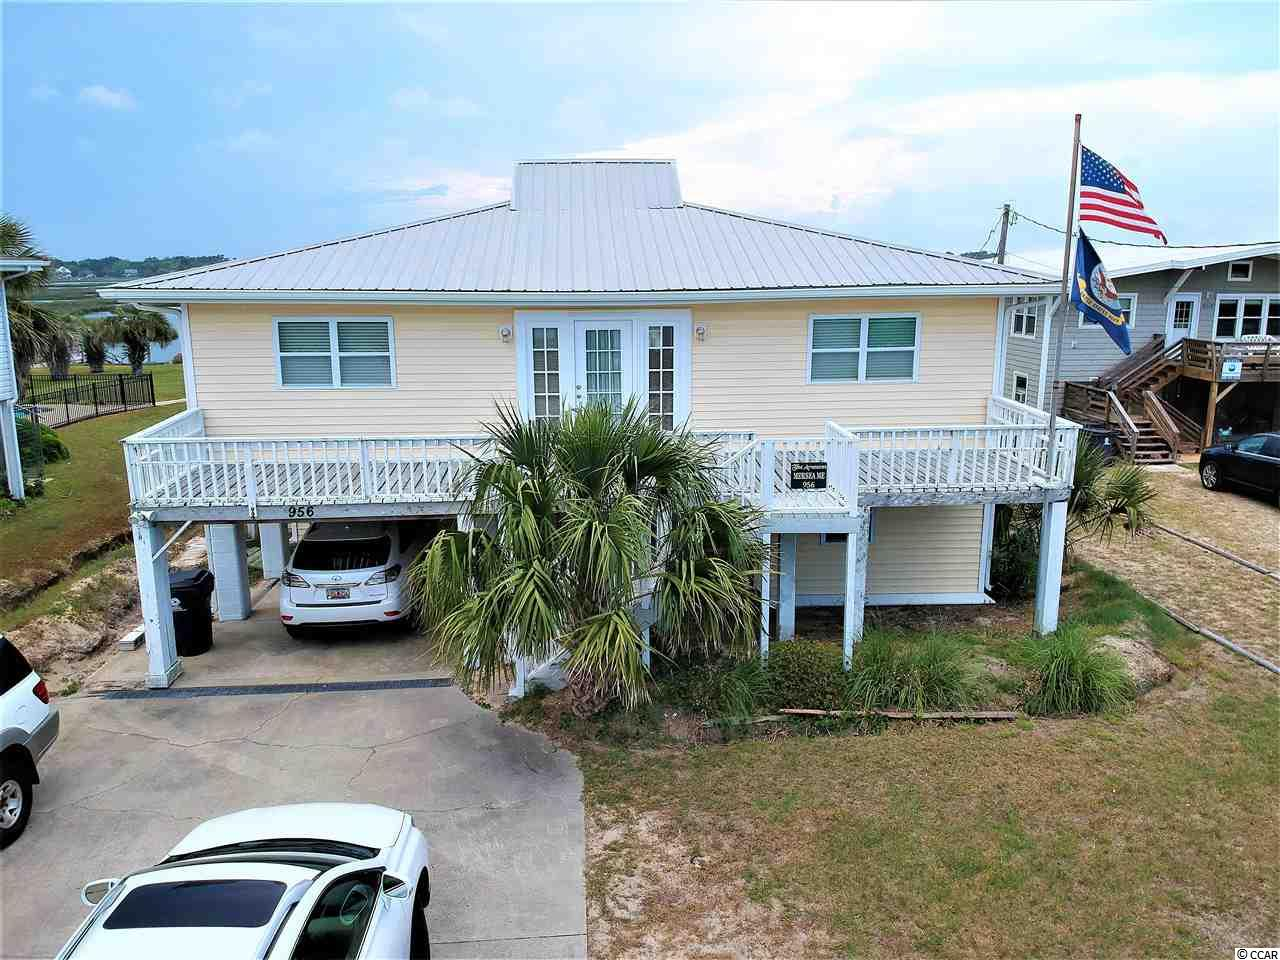 Just Reduced! Enjoy the best of both worlds from this 5 BR (6th BR easily possible by converting office) and 3.5 Bath channel front home on large lot, actually two (2) lots, located directly across the street from the beach and ocean. Features include hardwood floors, large lot with boat ramp, stationary dock, floating dock and boat lift. Two (2) lots platted and two Georgetown County tax parcels. The house is completely on the front lot which is 60' X 130' x 60' x 129.90'. This makes it easy to be able to sell either parcel independent of the other. The creek front lot is 60.20' x 96.10' x 60' x 91'. Seller will not subdivide, however, nor sell separately.